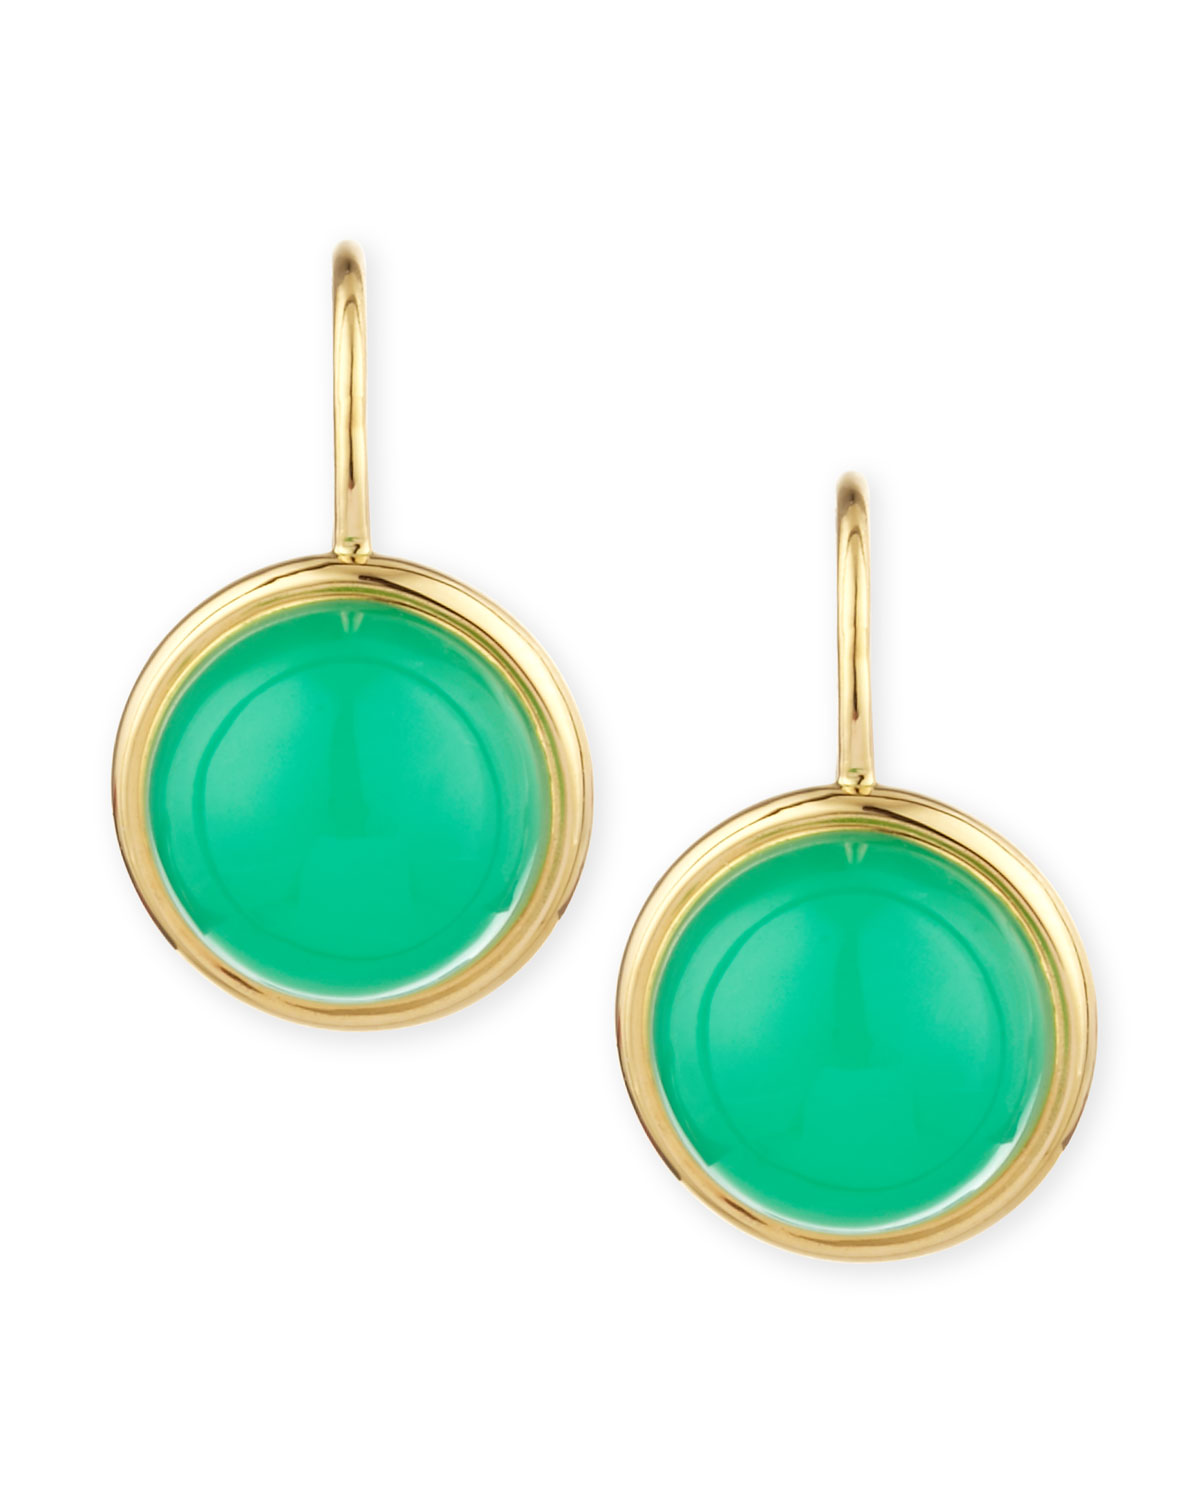 Baubles 18k Large Chrysoprase Earrings